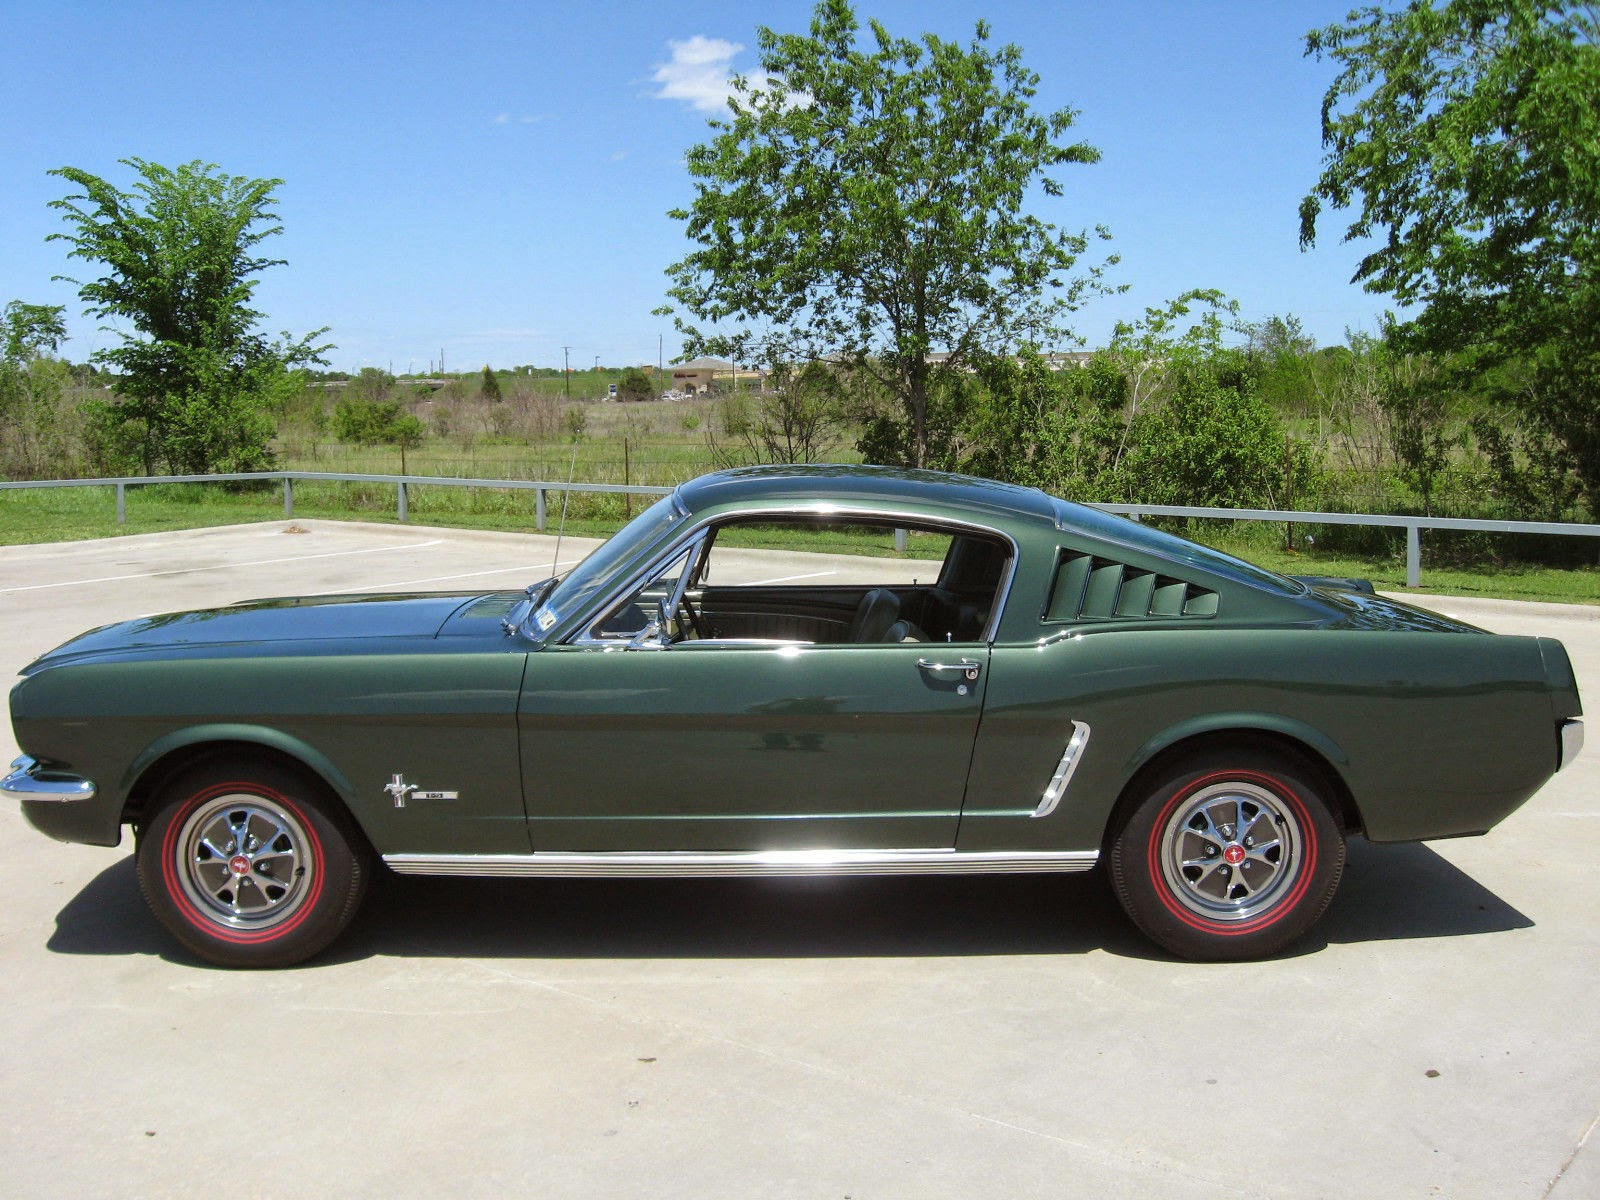 This car is registered in the t 5 registry there are only 76 1965 t 5 mustang s known to exist worldwide 33 coupes 17 convertibles and 26 fastbacks this is